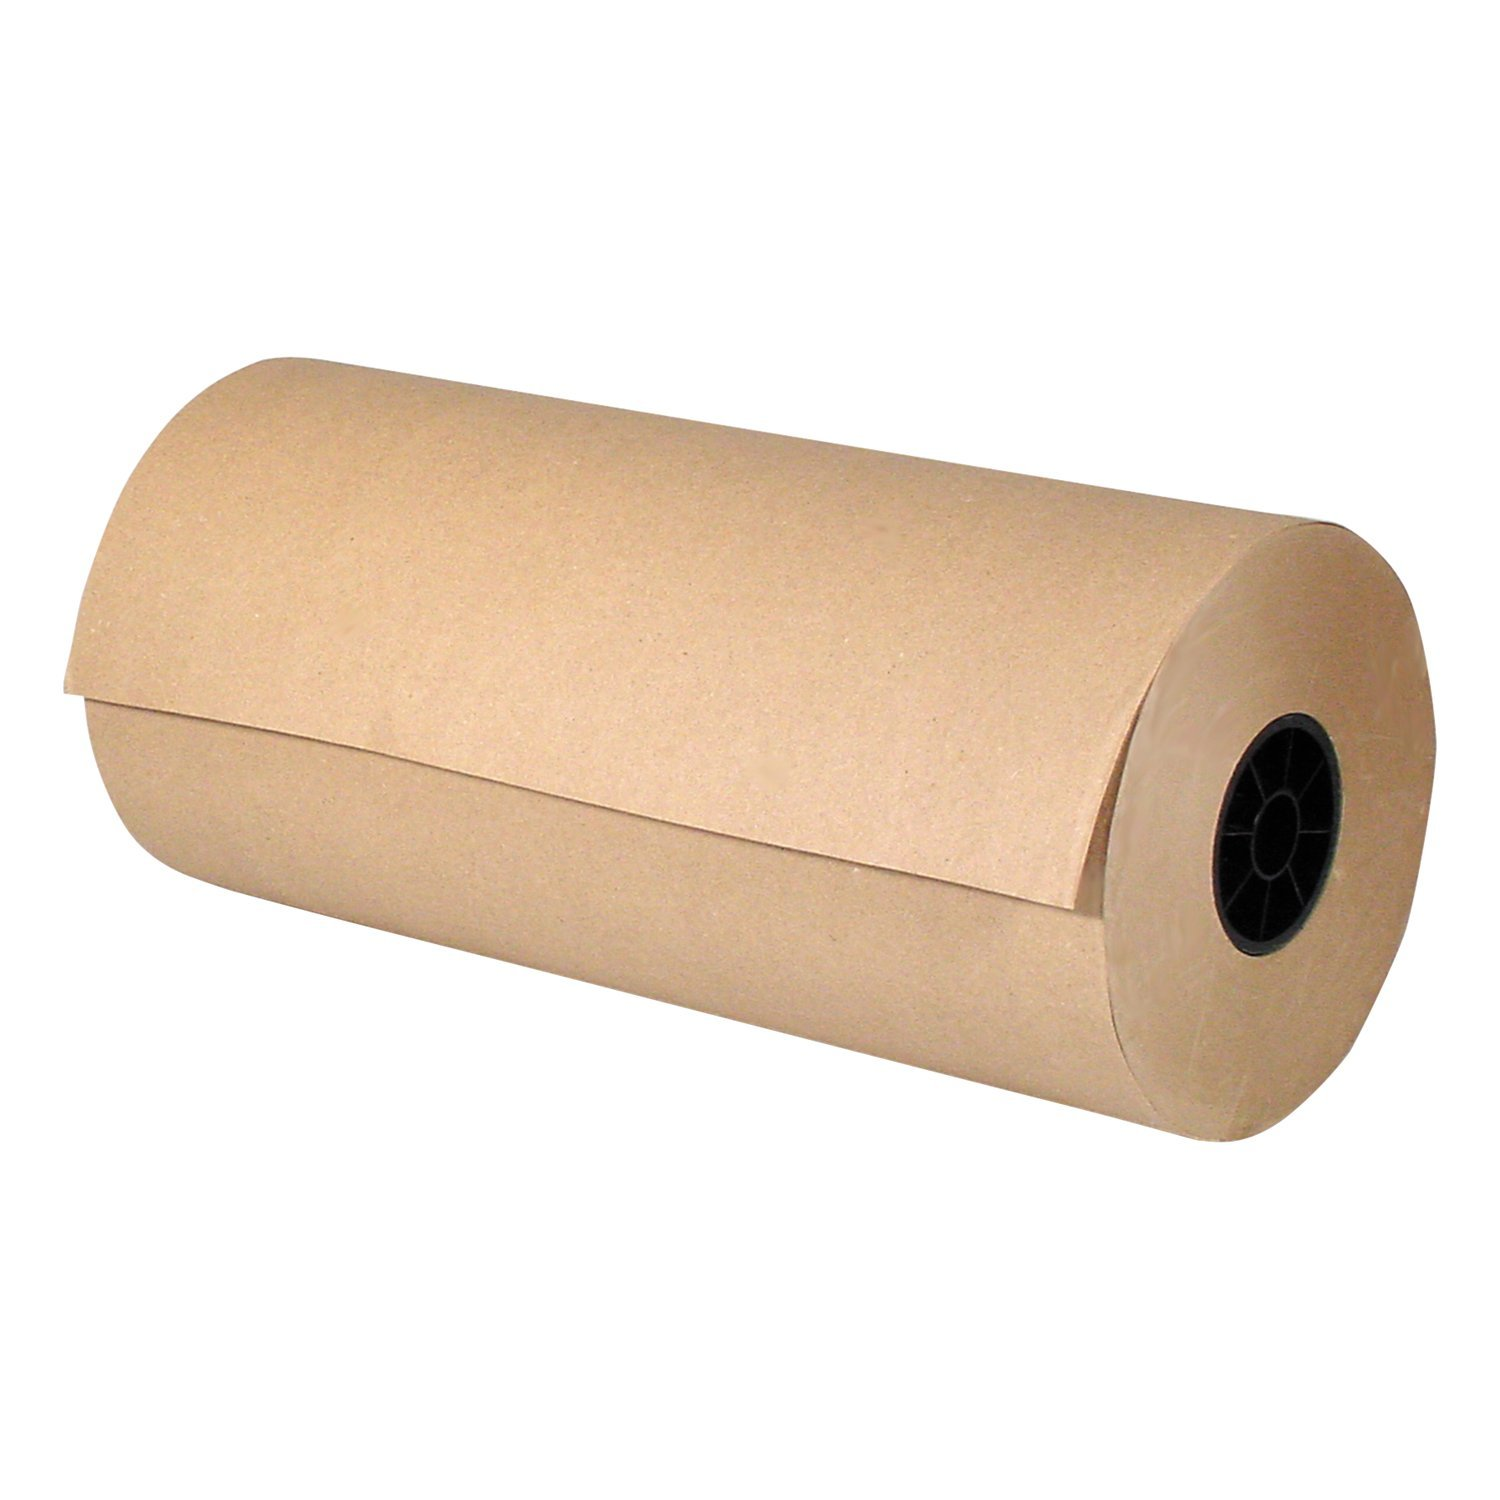 roll of brown craft paper photo album lavex janitorial. Black Bedroom Furniture Sets. Home Design Ideas